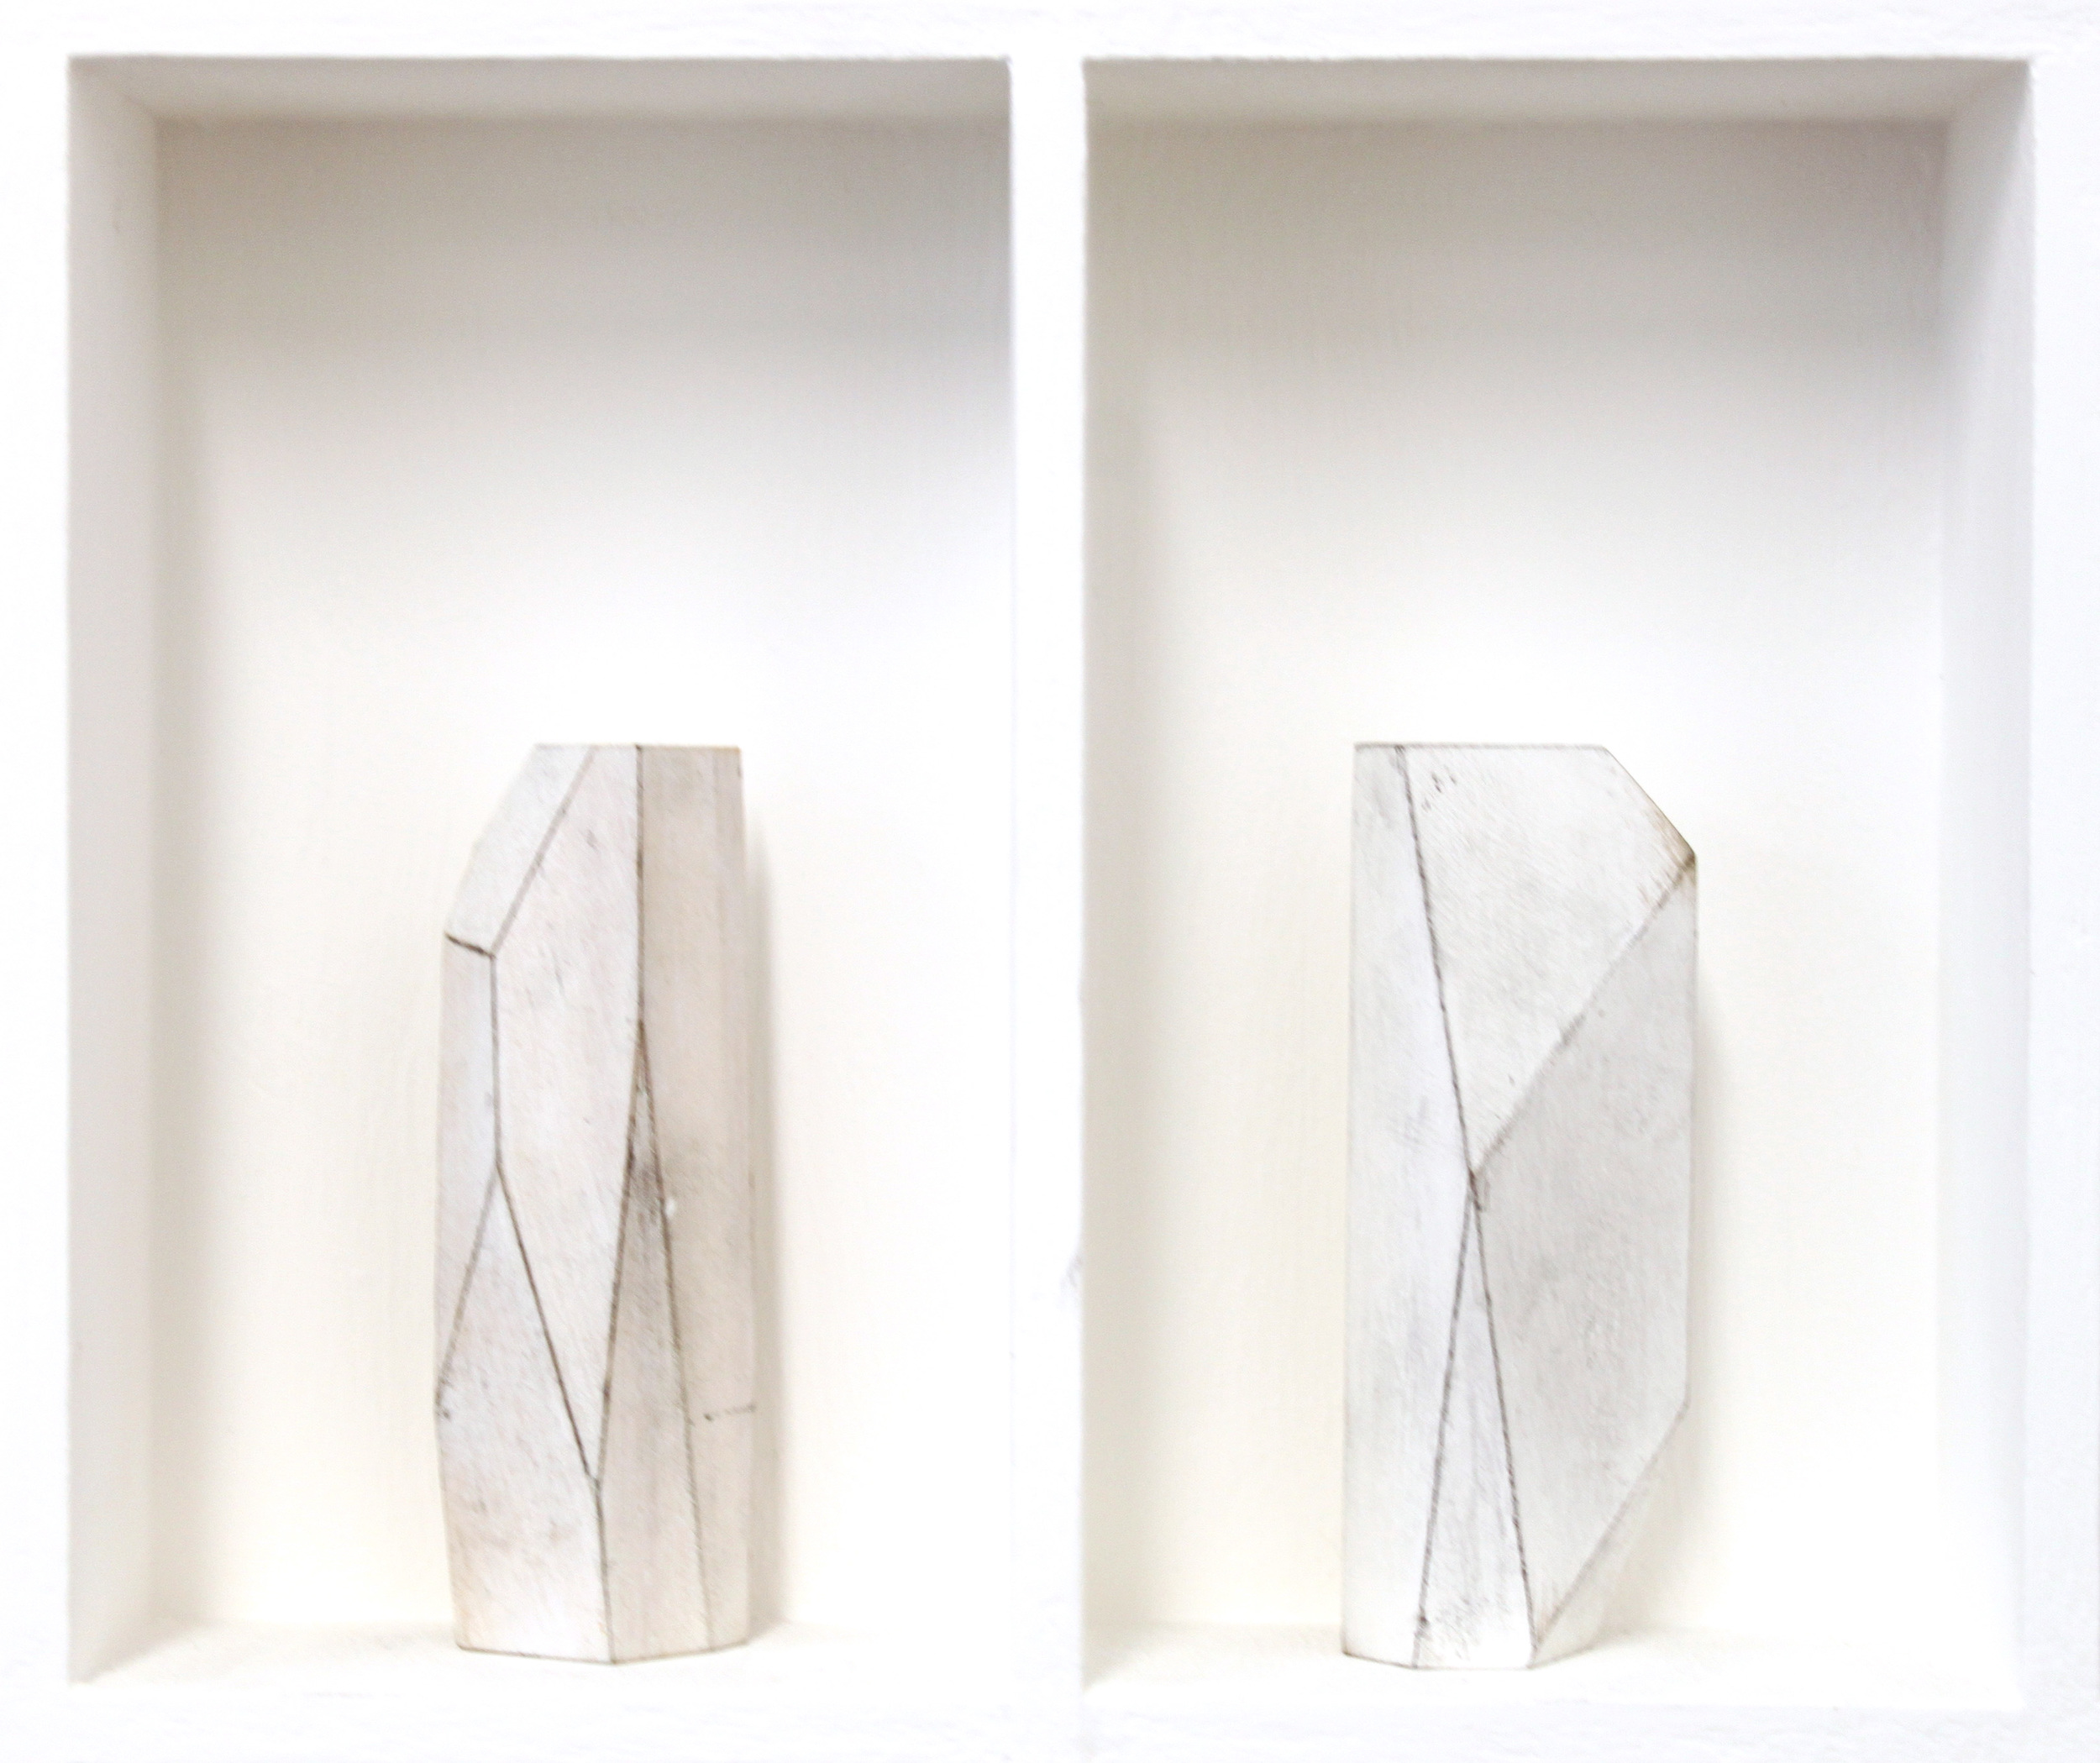 Untitled Form - White wood in wood construction 5 x 9 cm